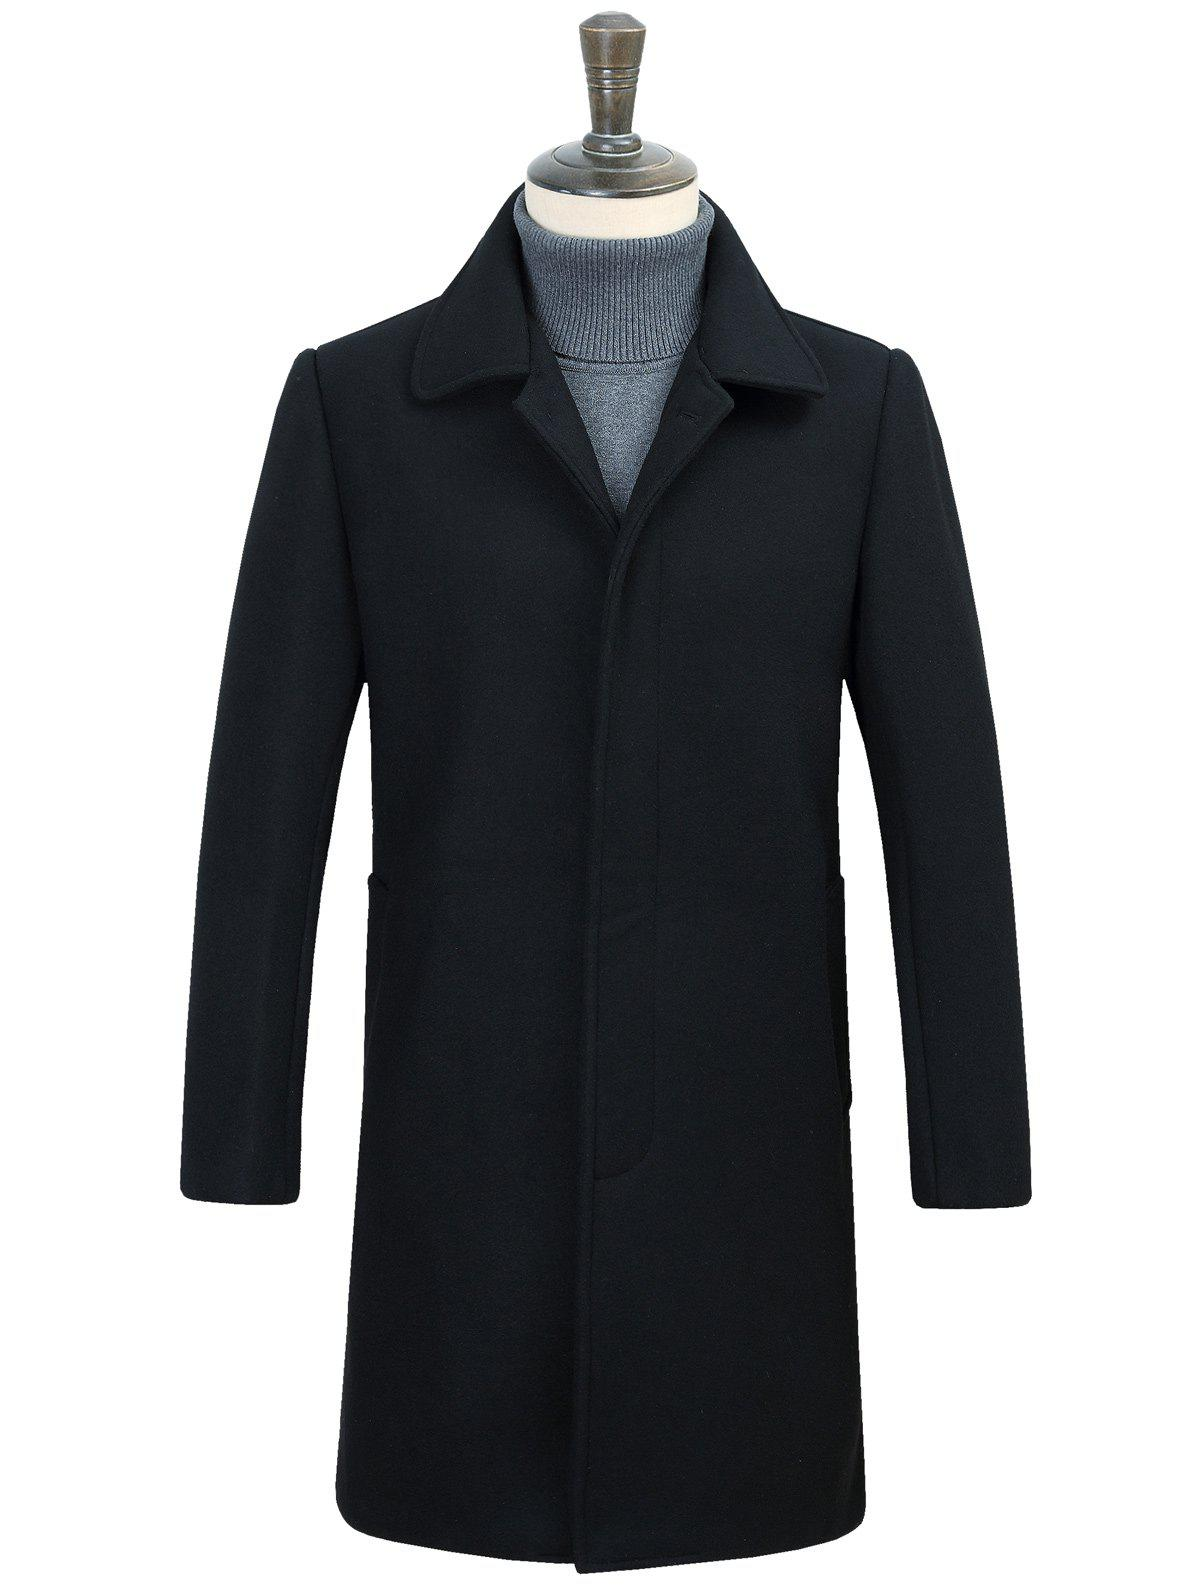 Covered Button Longline Woolen CoatMEN<br><br>Size: 3XL; Color: BLACK; Clothes Type: Wool &amp; Blends; Style: Fashion; Material: Cotton,Polyester; Collar: Turn-down Collar; Shirt Length: Long; Sleeve Length: Long Sleeves; Season: Winter; Weight: 0.950kg; Package Contents: 1 x Coat;